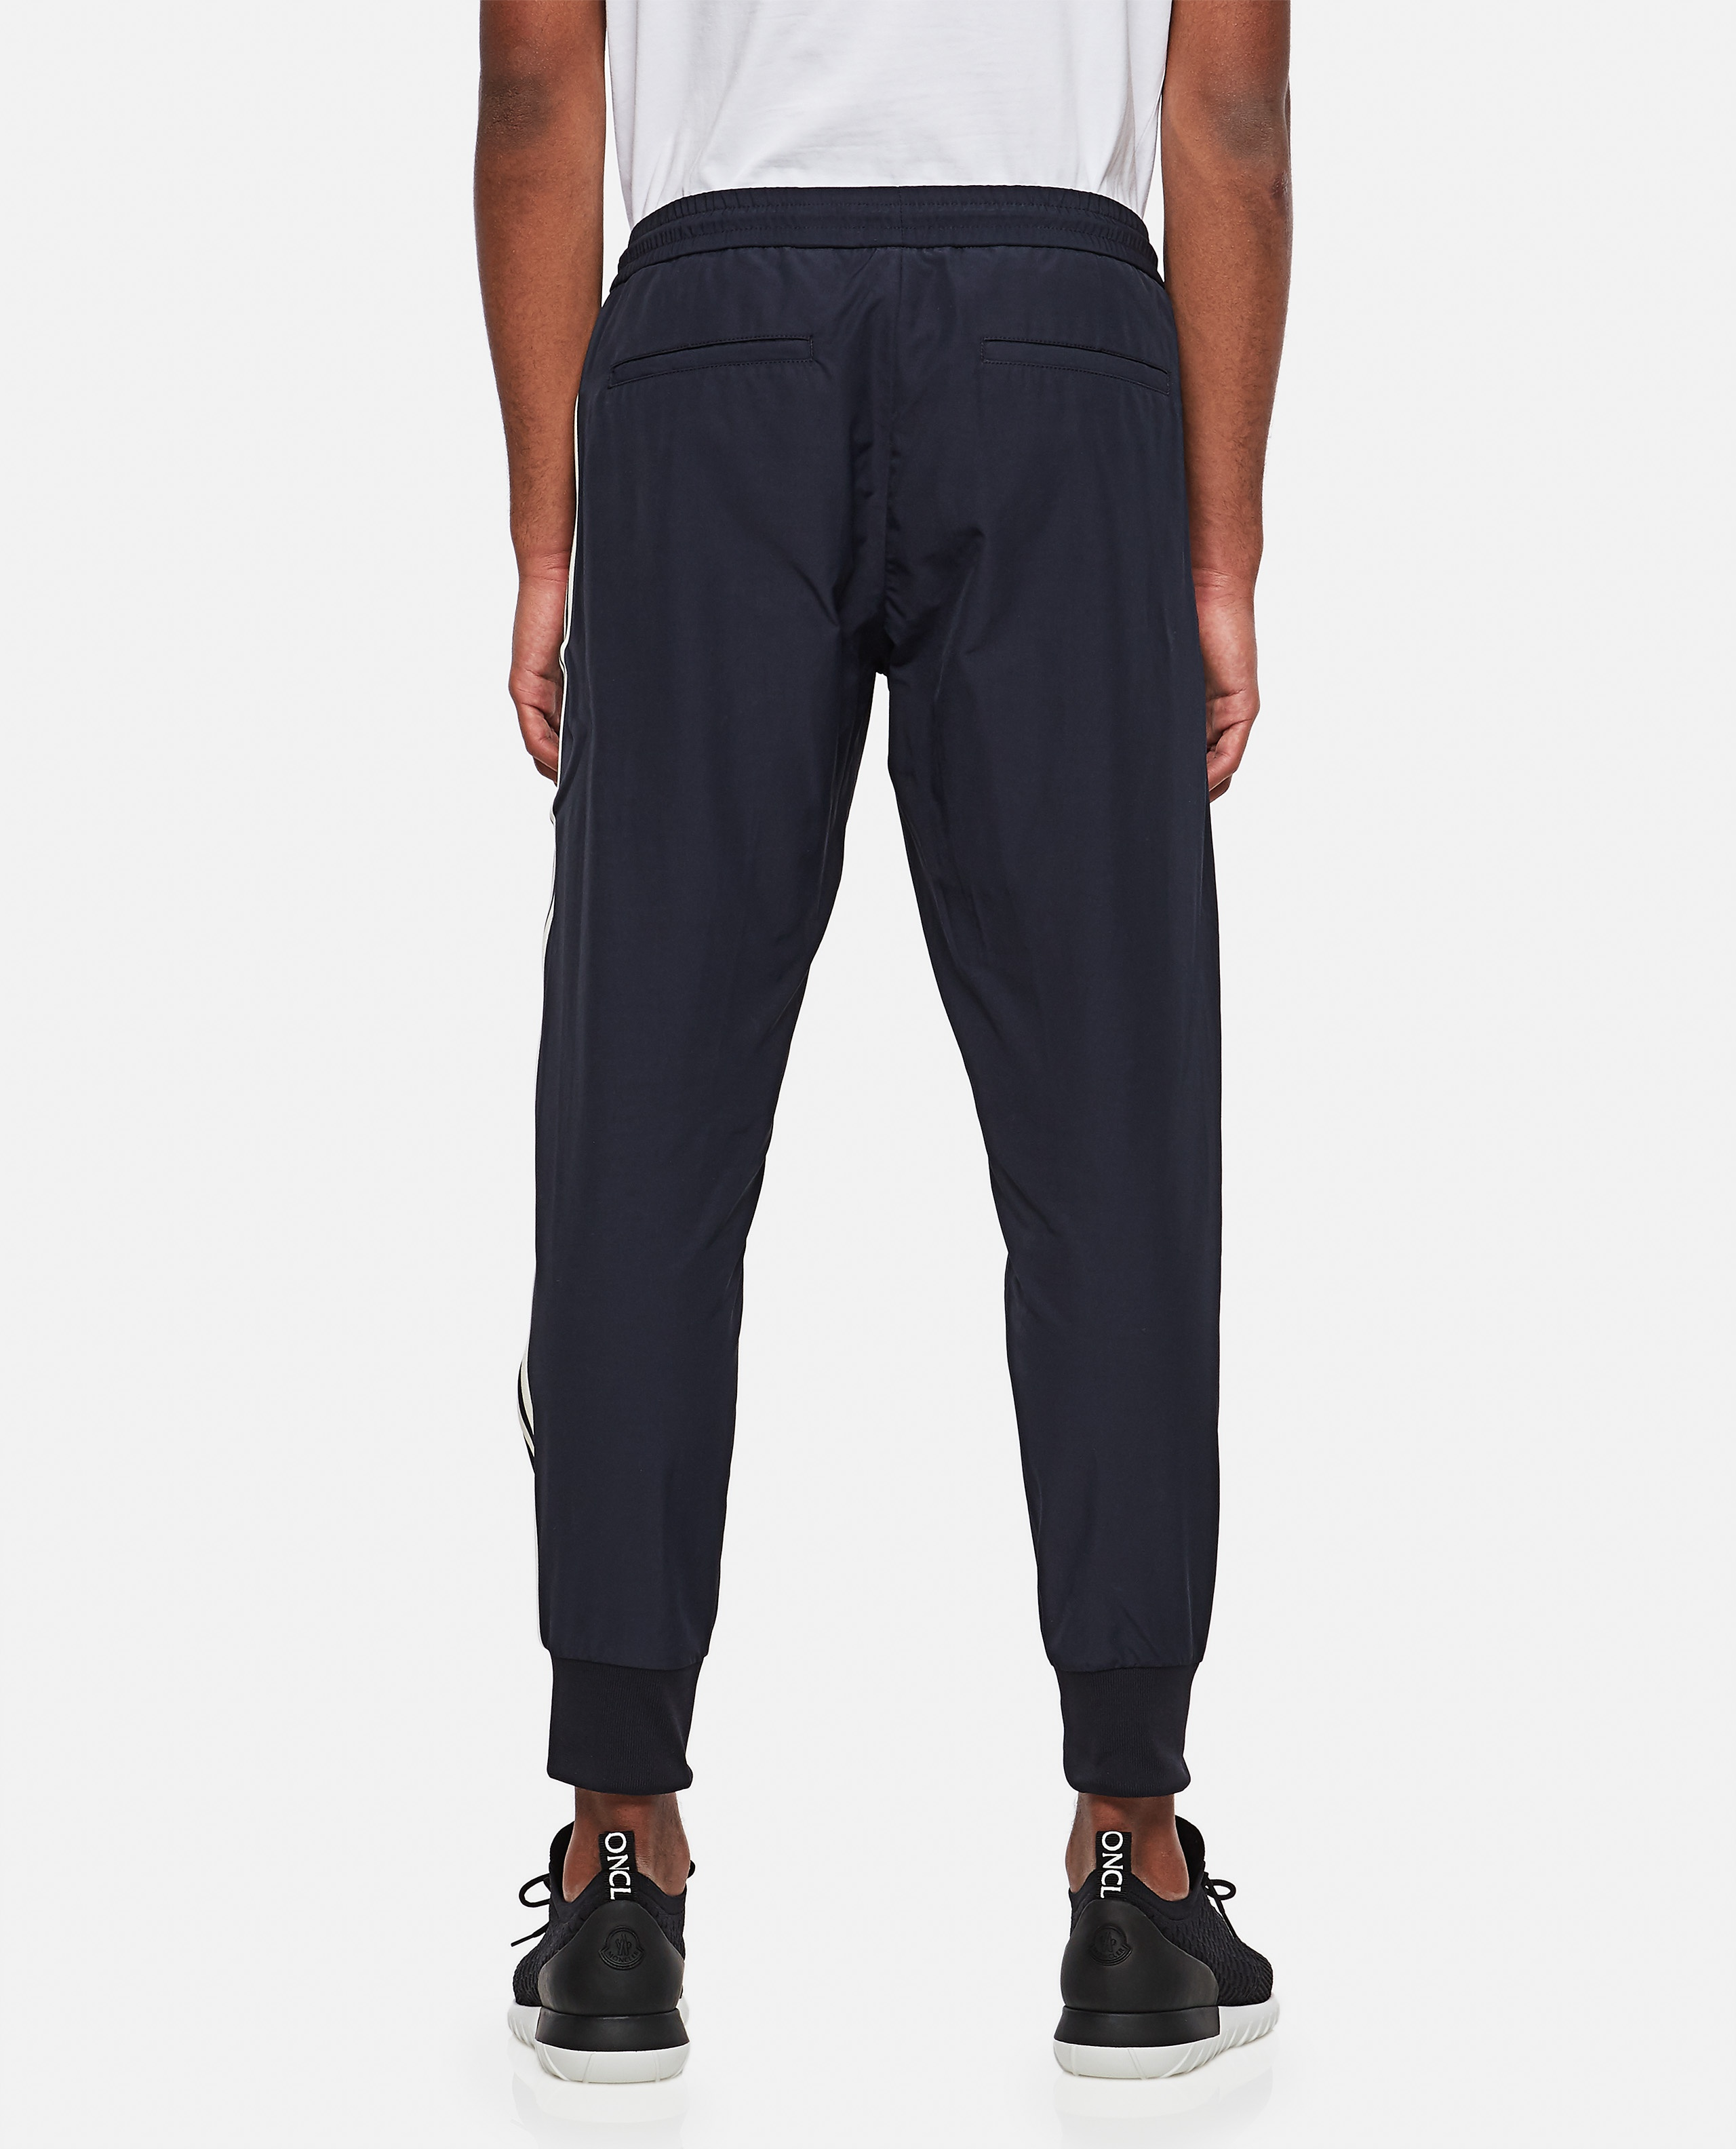 Jogging trousers with side band Men Moncler 000308560045254 3